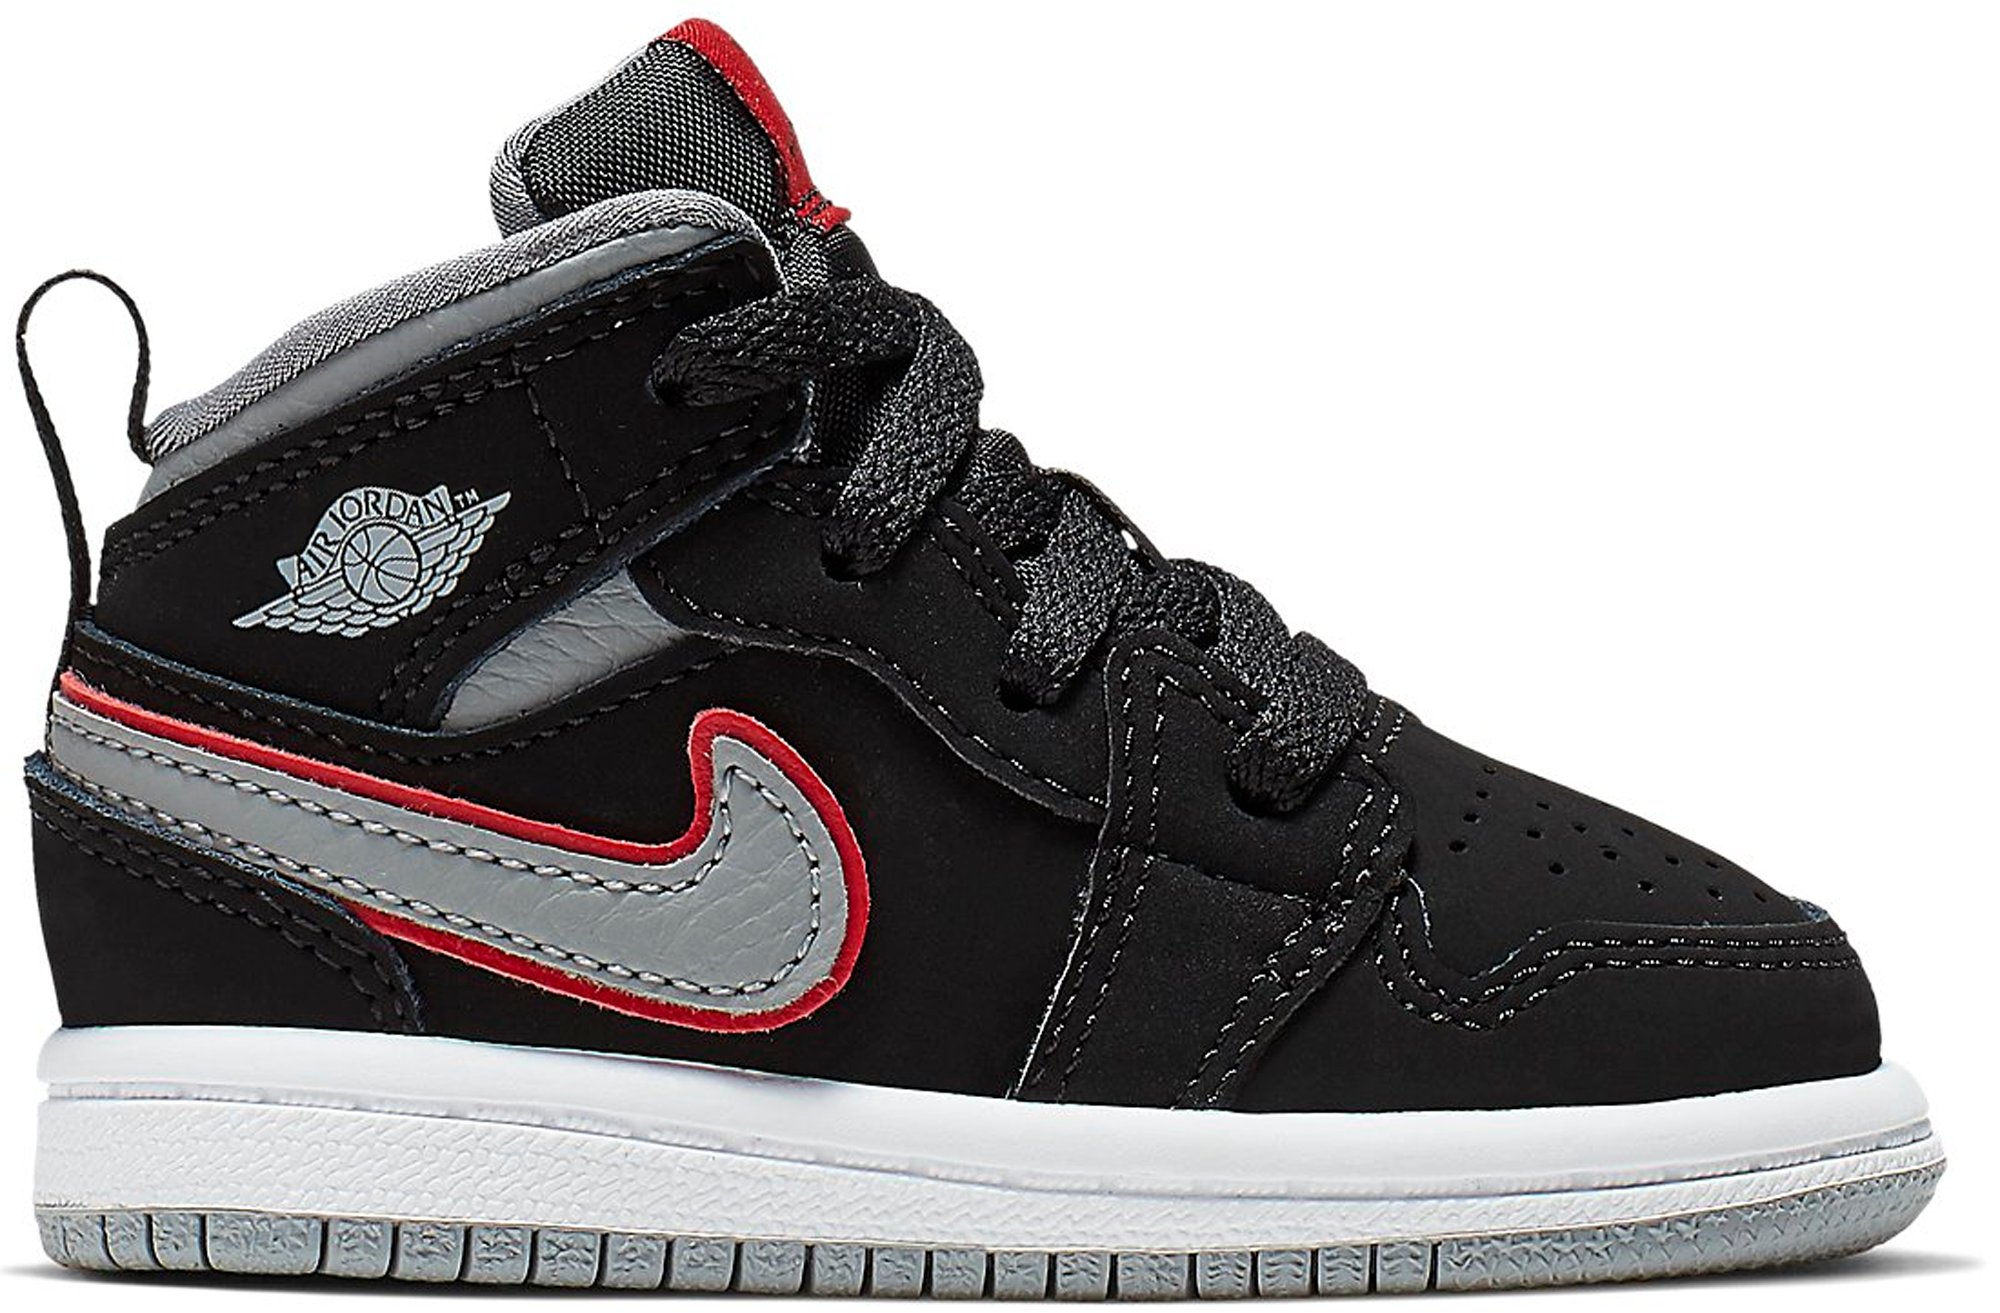 Jordan 1 Mid Black Particle Grey Gym Red (TD)